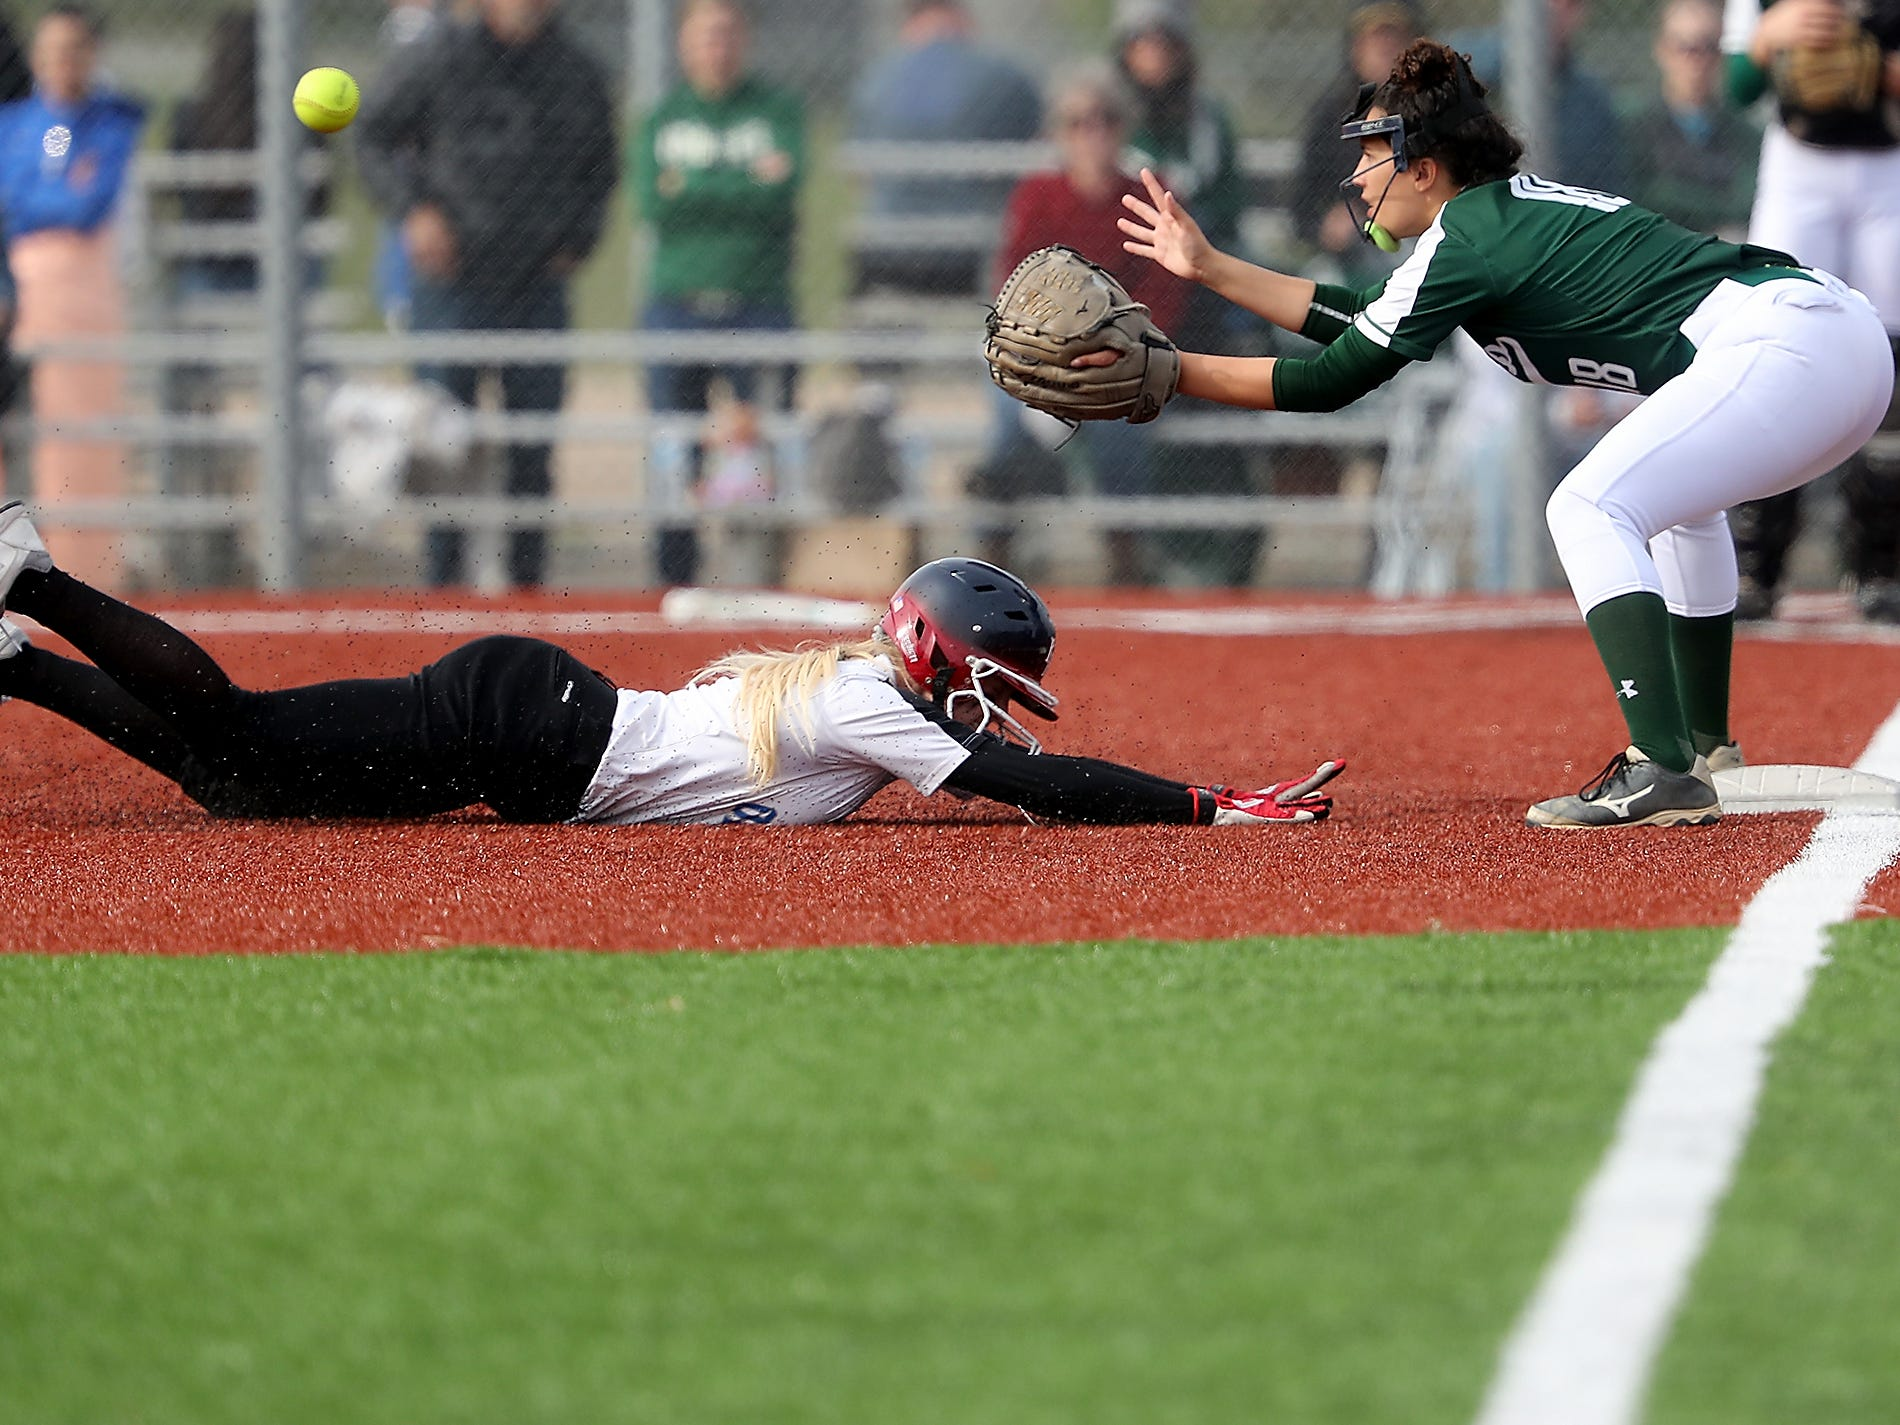 Olympic's Molly Gates slides into third ahead of the catch by Port Angeles's Lucah Folden during their game on Friday, April 26, 2019. Gates was safe on the play.